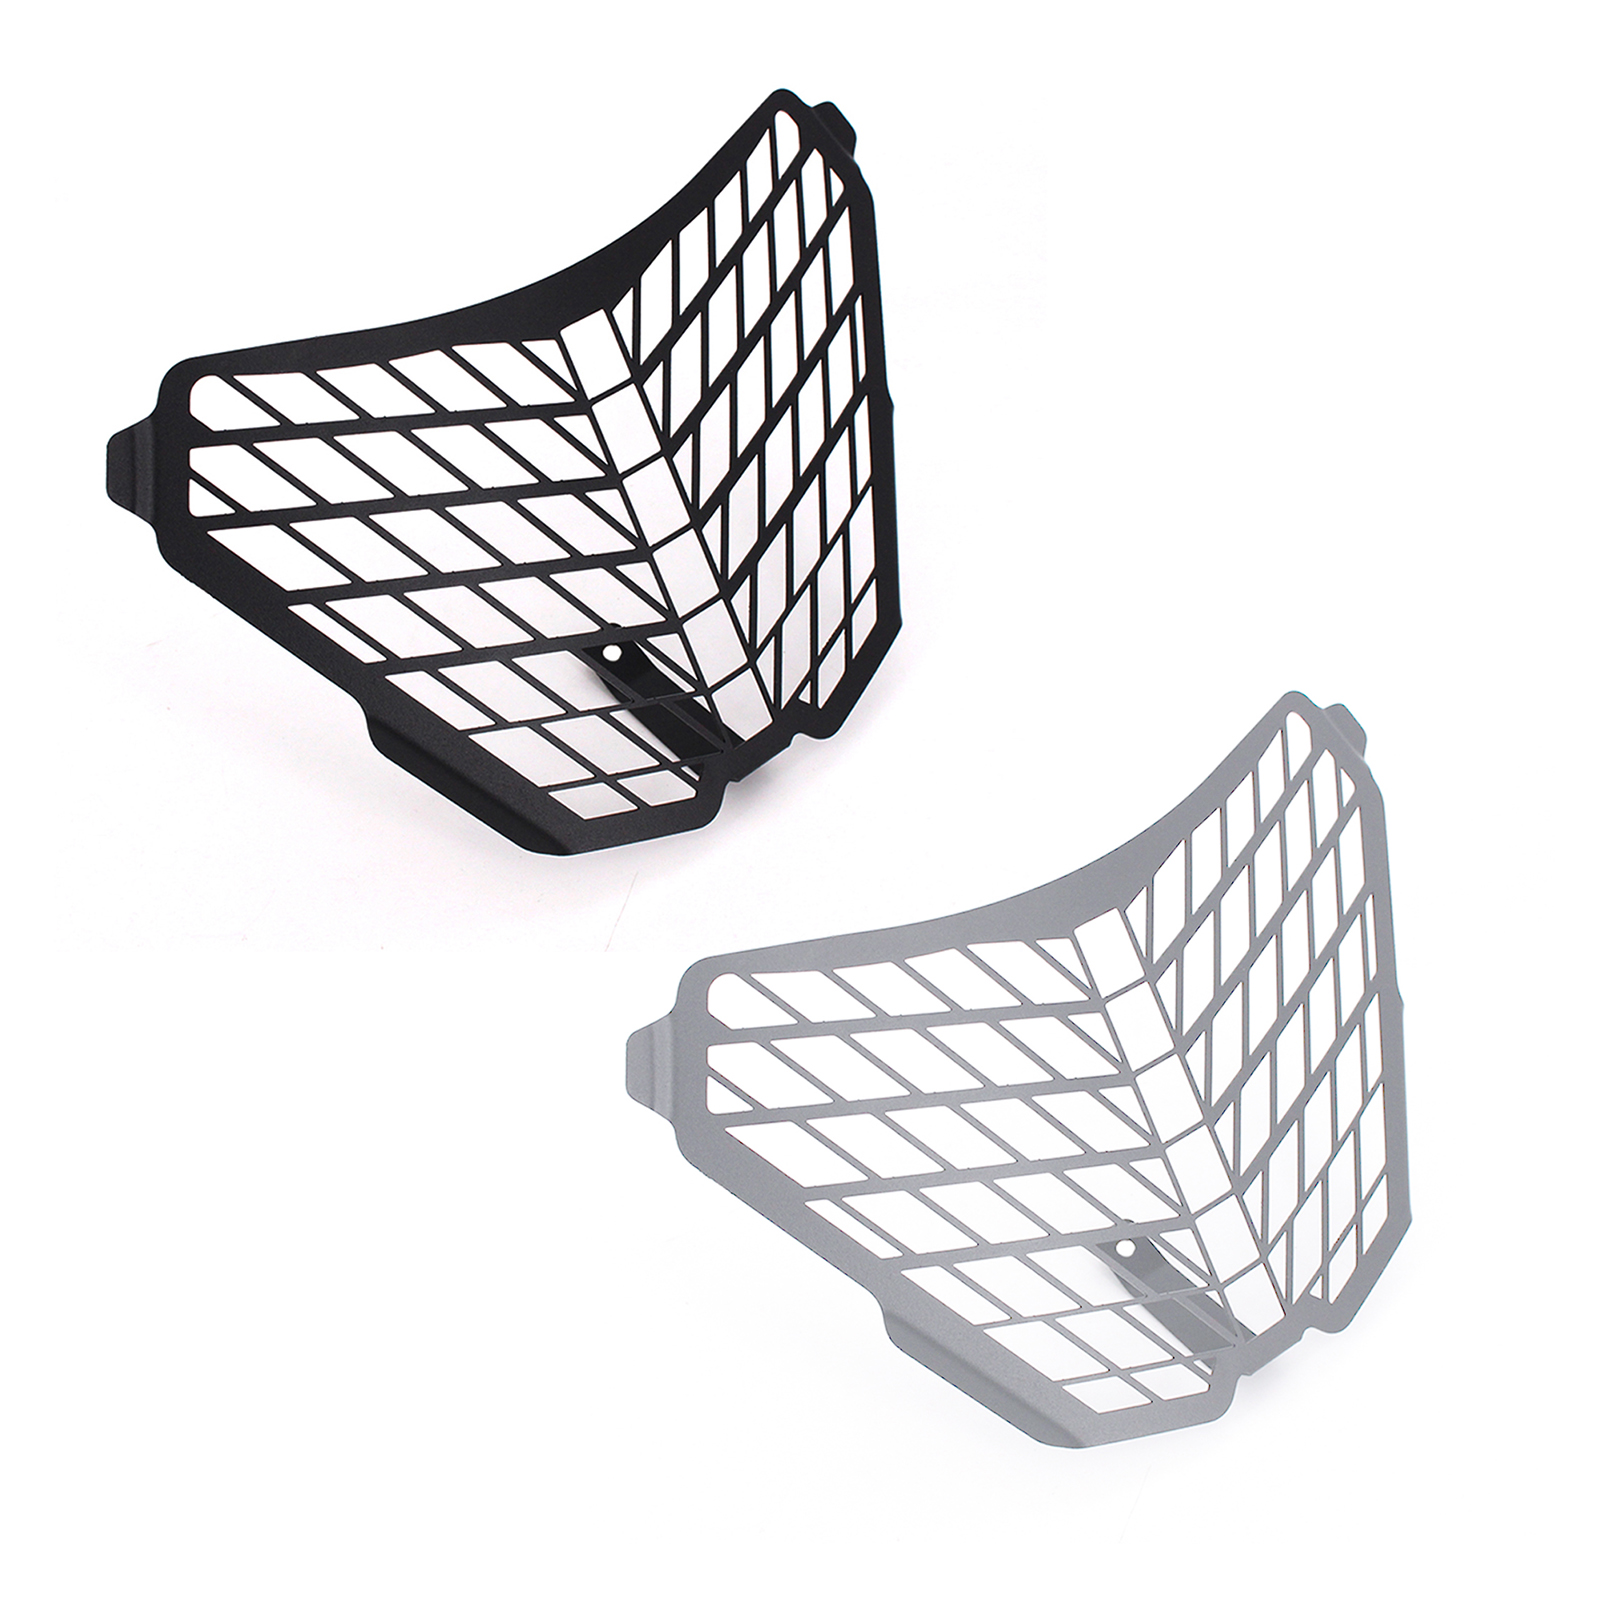 Areyourshop For KTM RC 125 390 200 2014-2019 2015 2016 2017 2018 Headlight Guard Protector Grill Cover Stainless Steel Motor